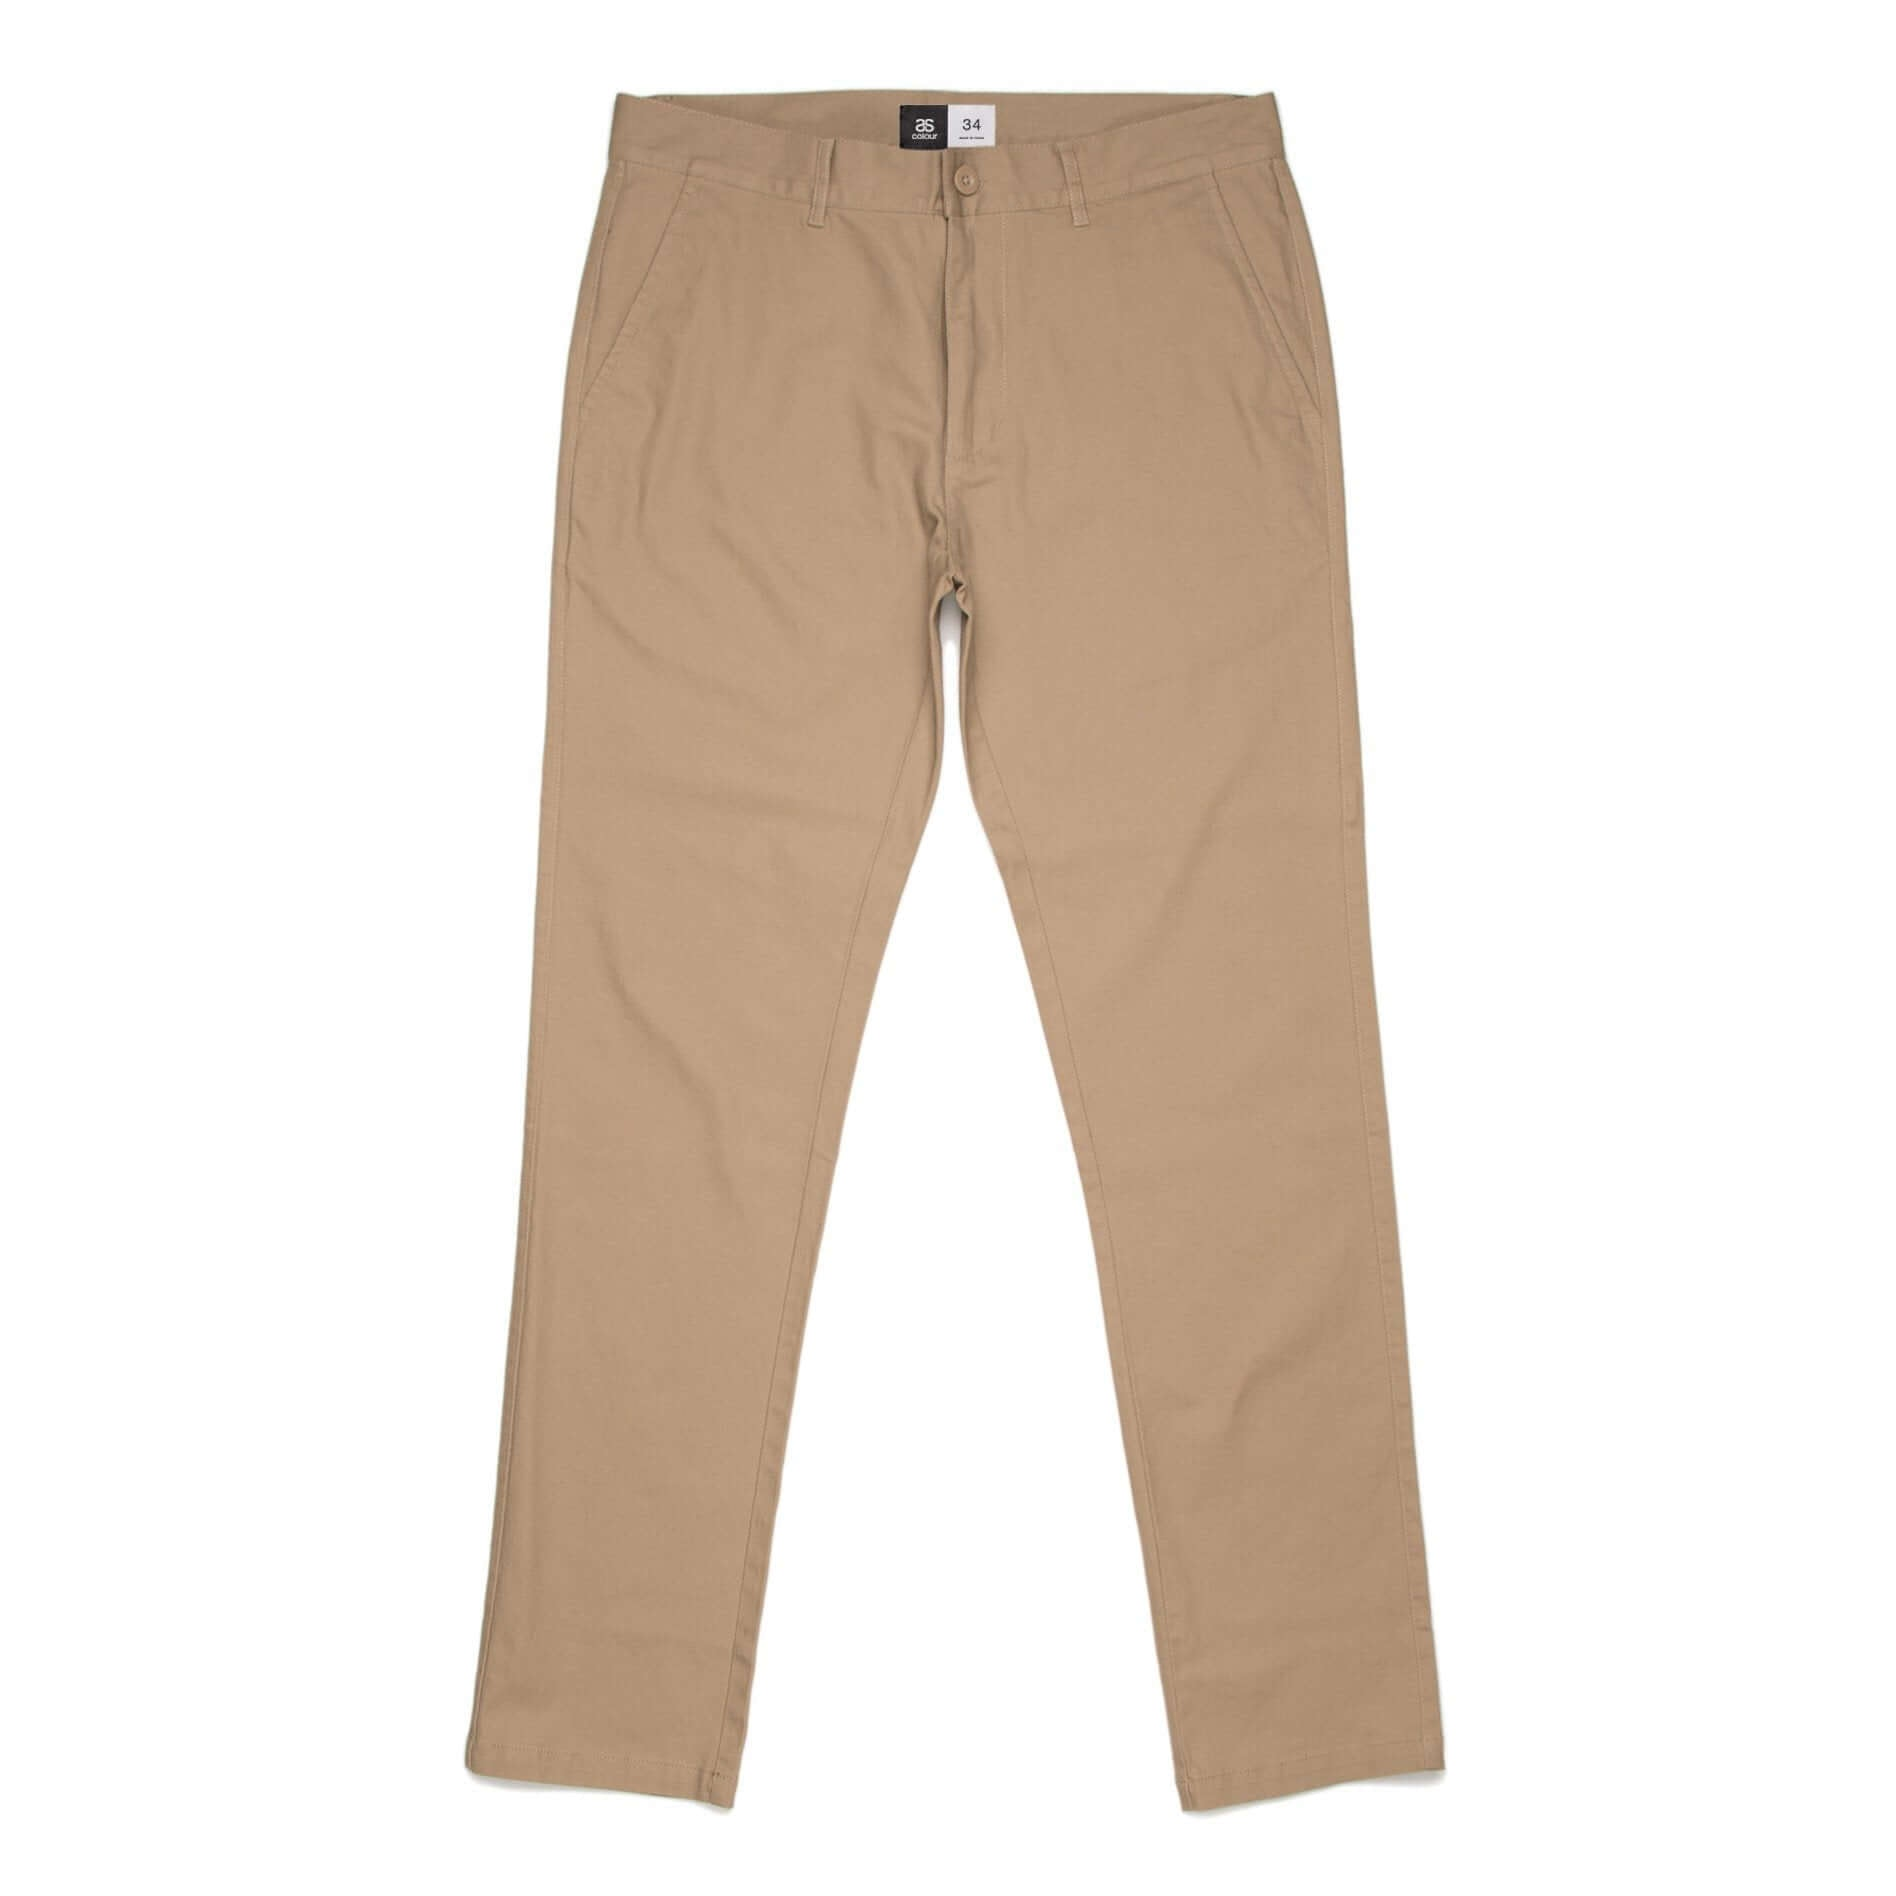 AS Colour STANDARD PANT - Khaki